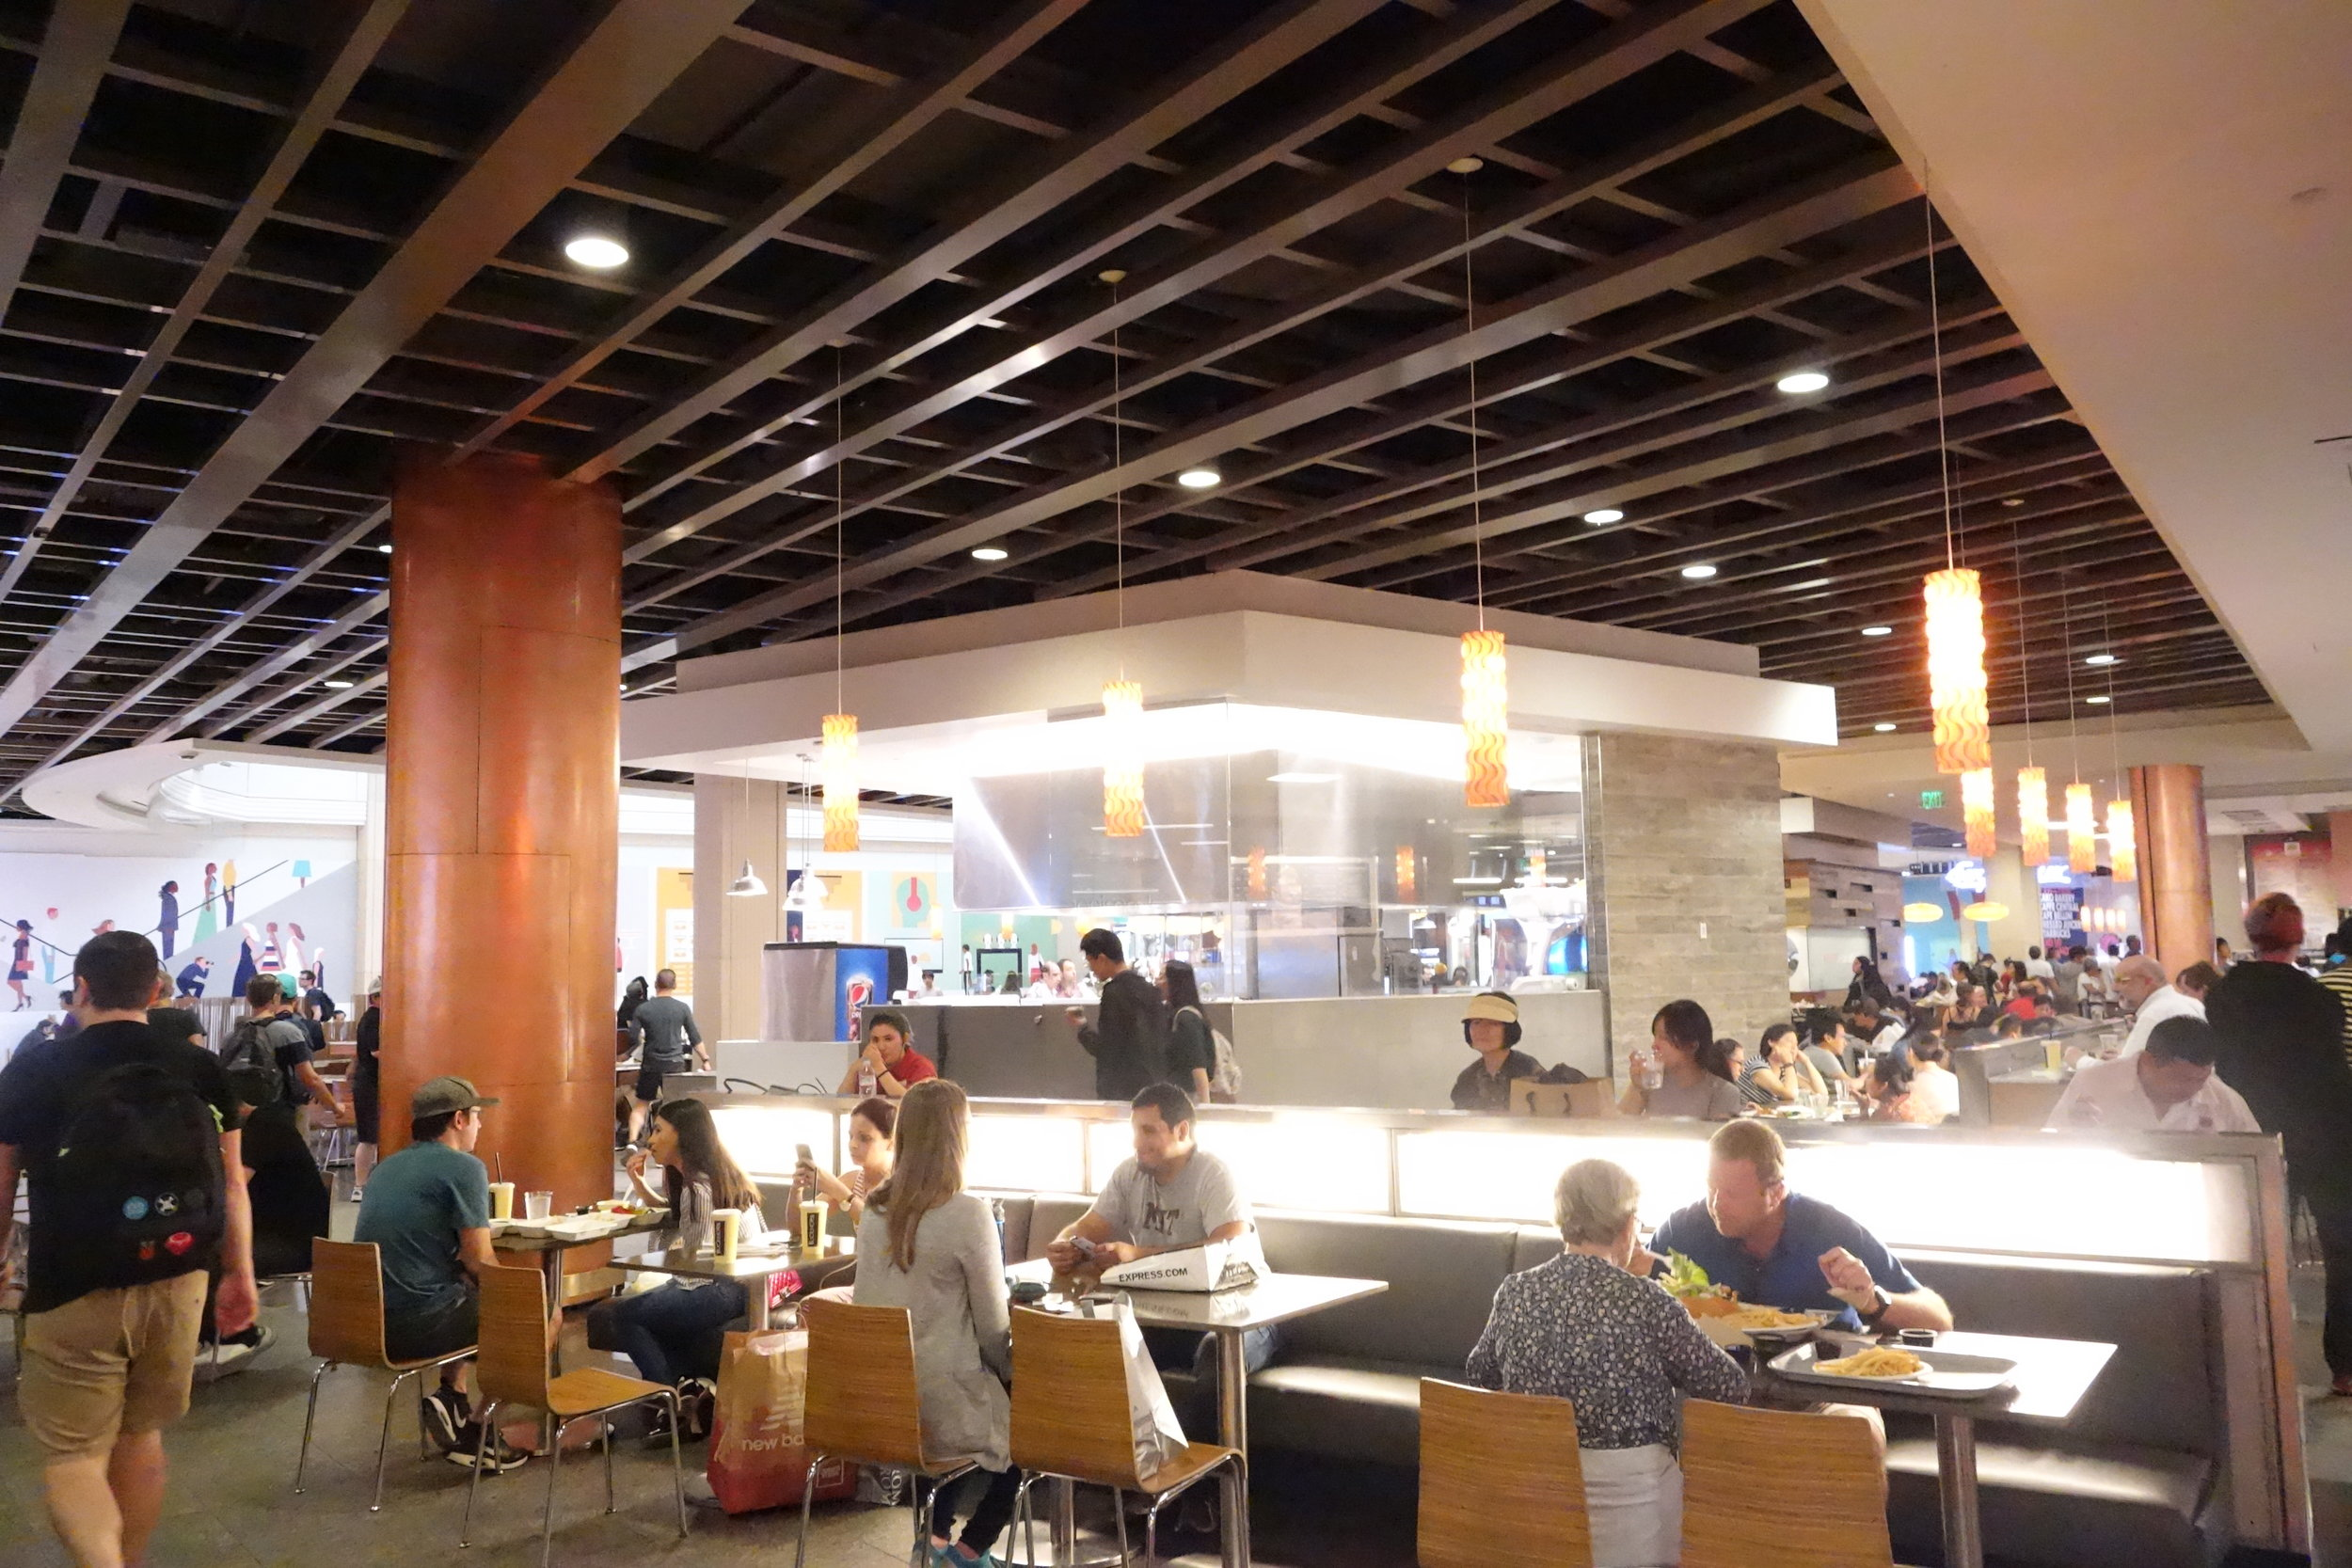 Inside the Food Court at Westfield San Francisco Centre.